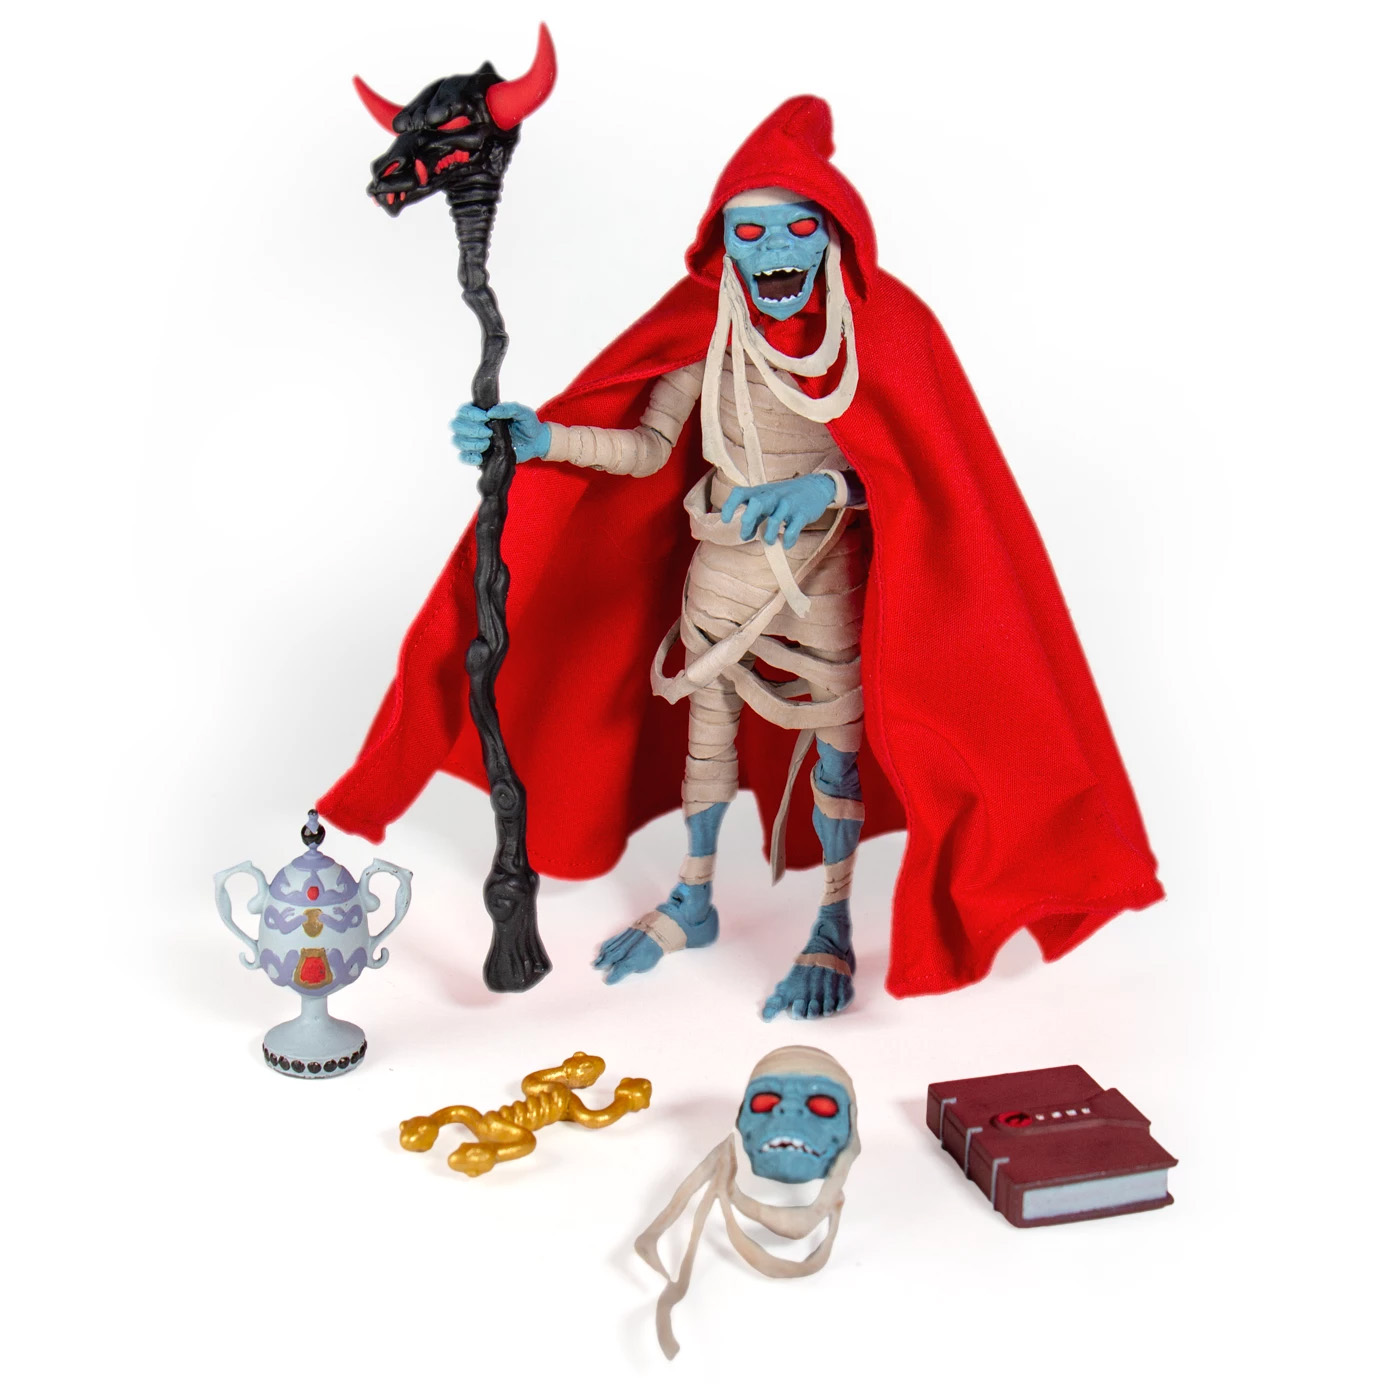 MUMM-RA ThunderCats Ultimate 7-Inch Action Figure